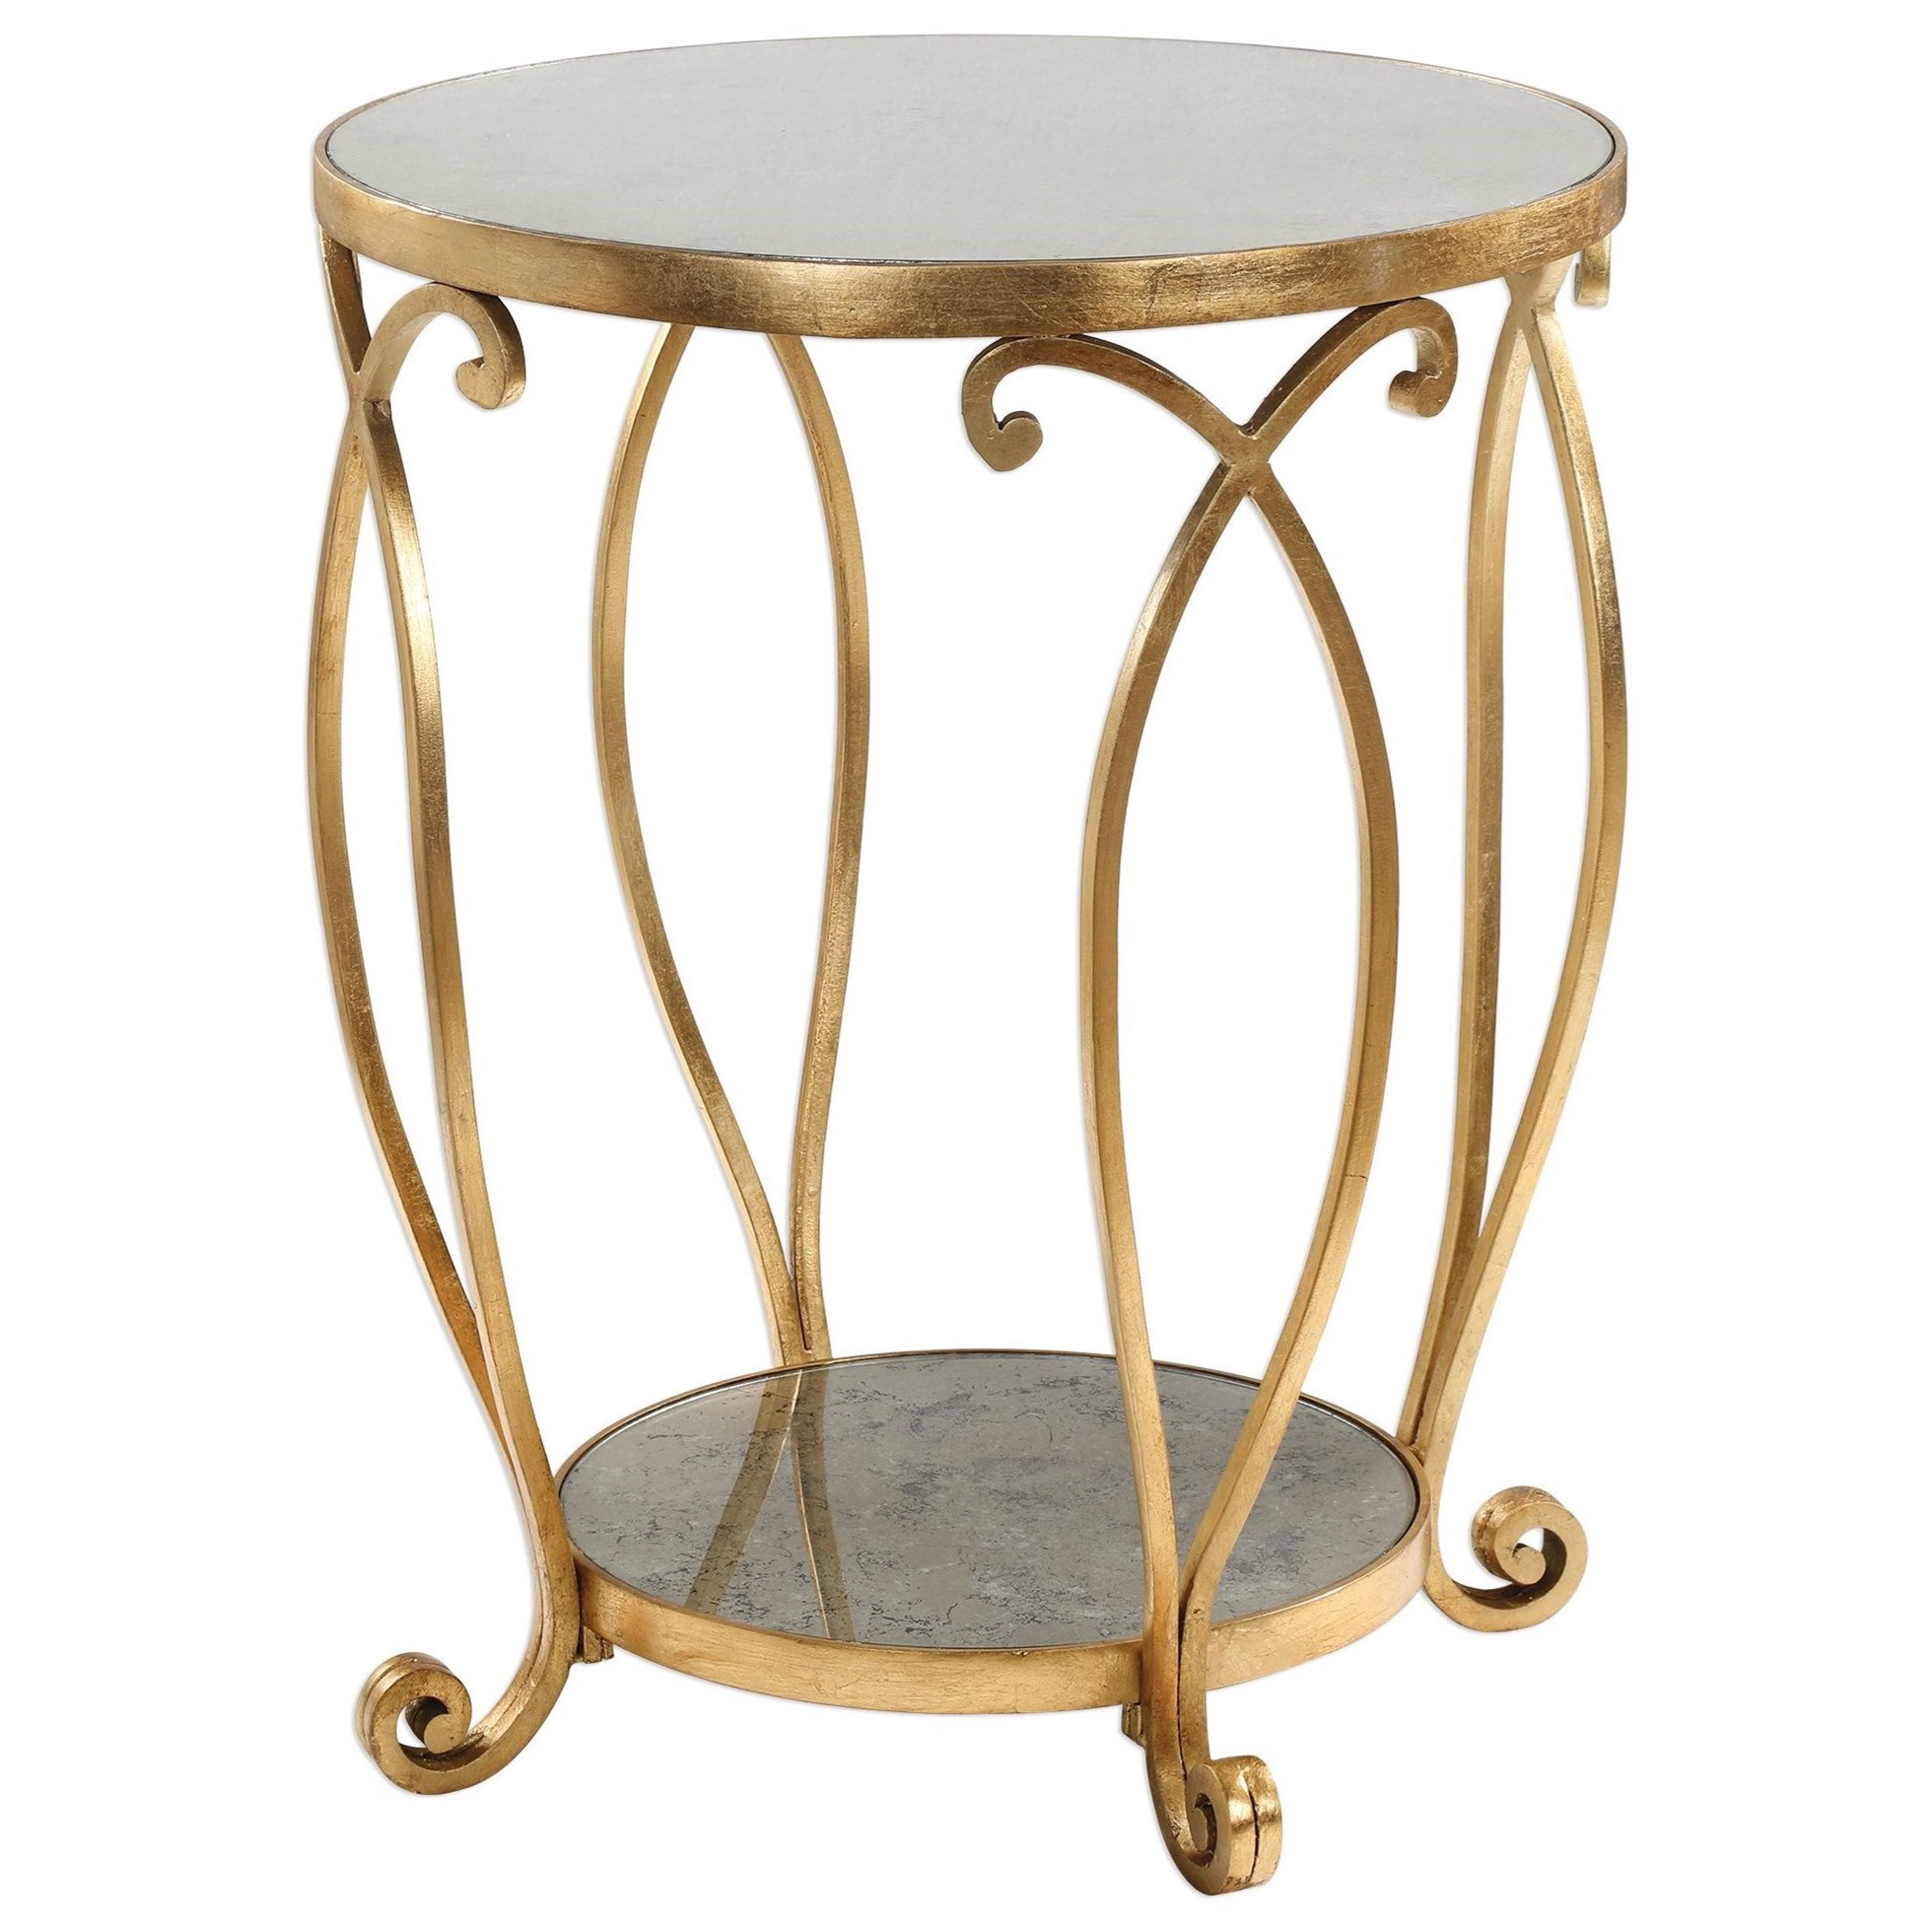 uttermost accent furniture occasional tables martella round products color gold table cherry and black coffee wicker pottery barn centerpiece iron legs shower chair target